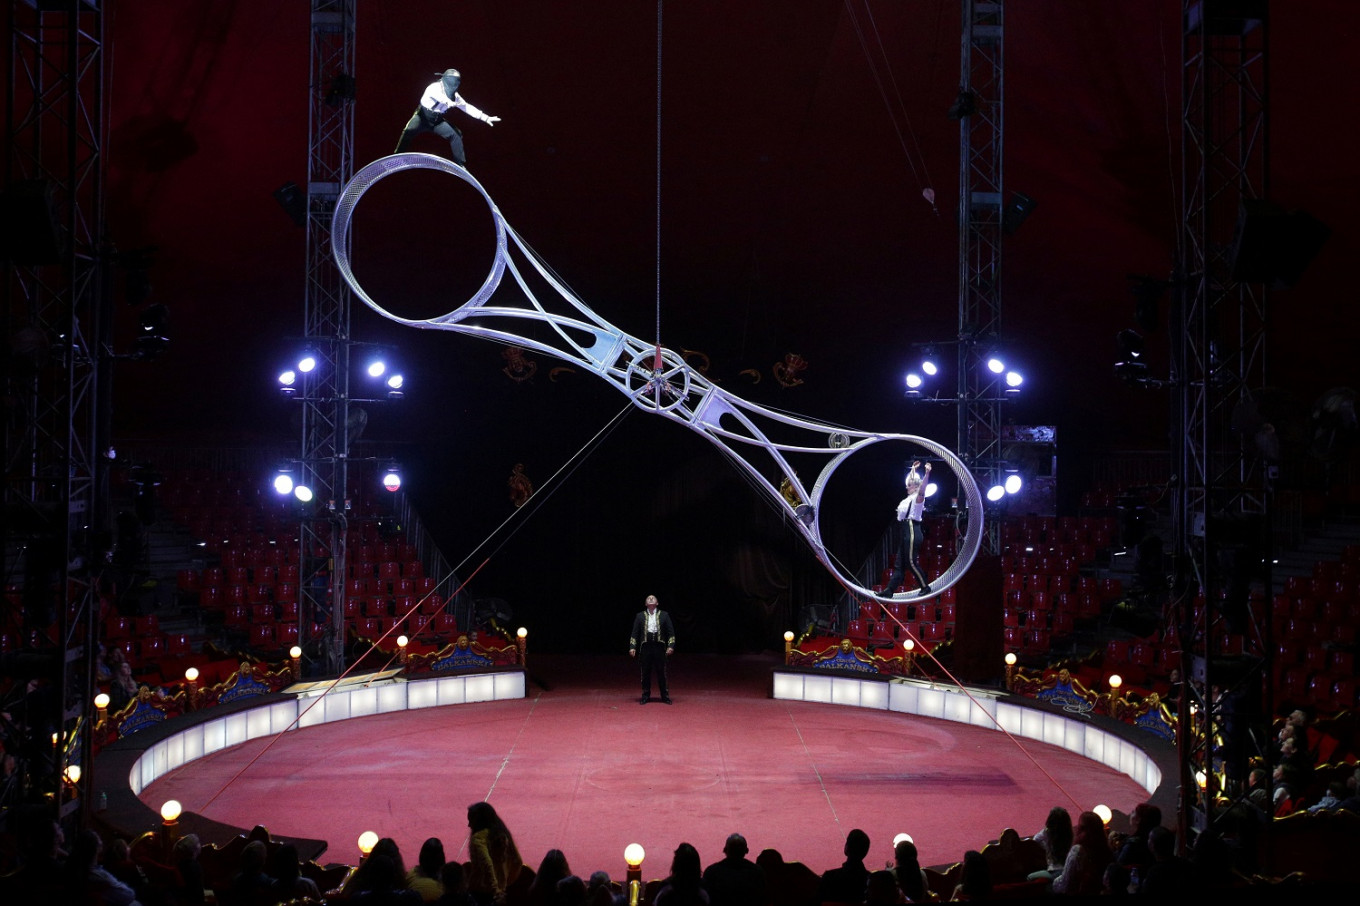 On a tightrope: Bulgarian circus defies odds during COVID pandemic